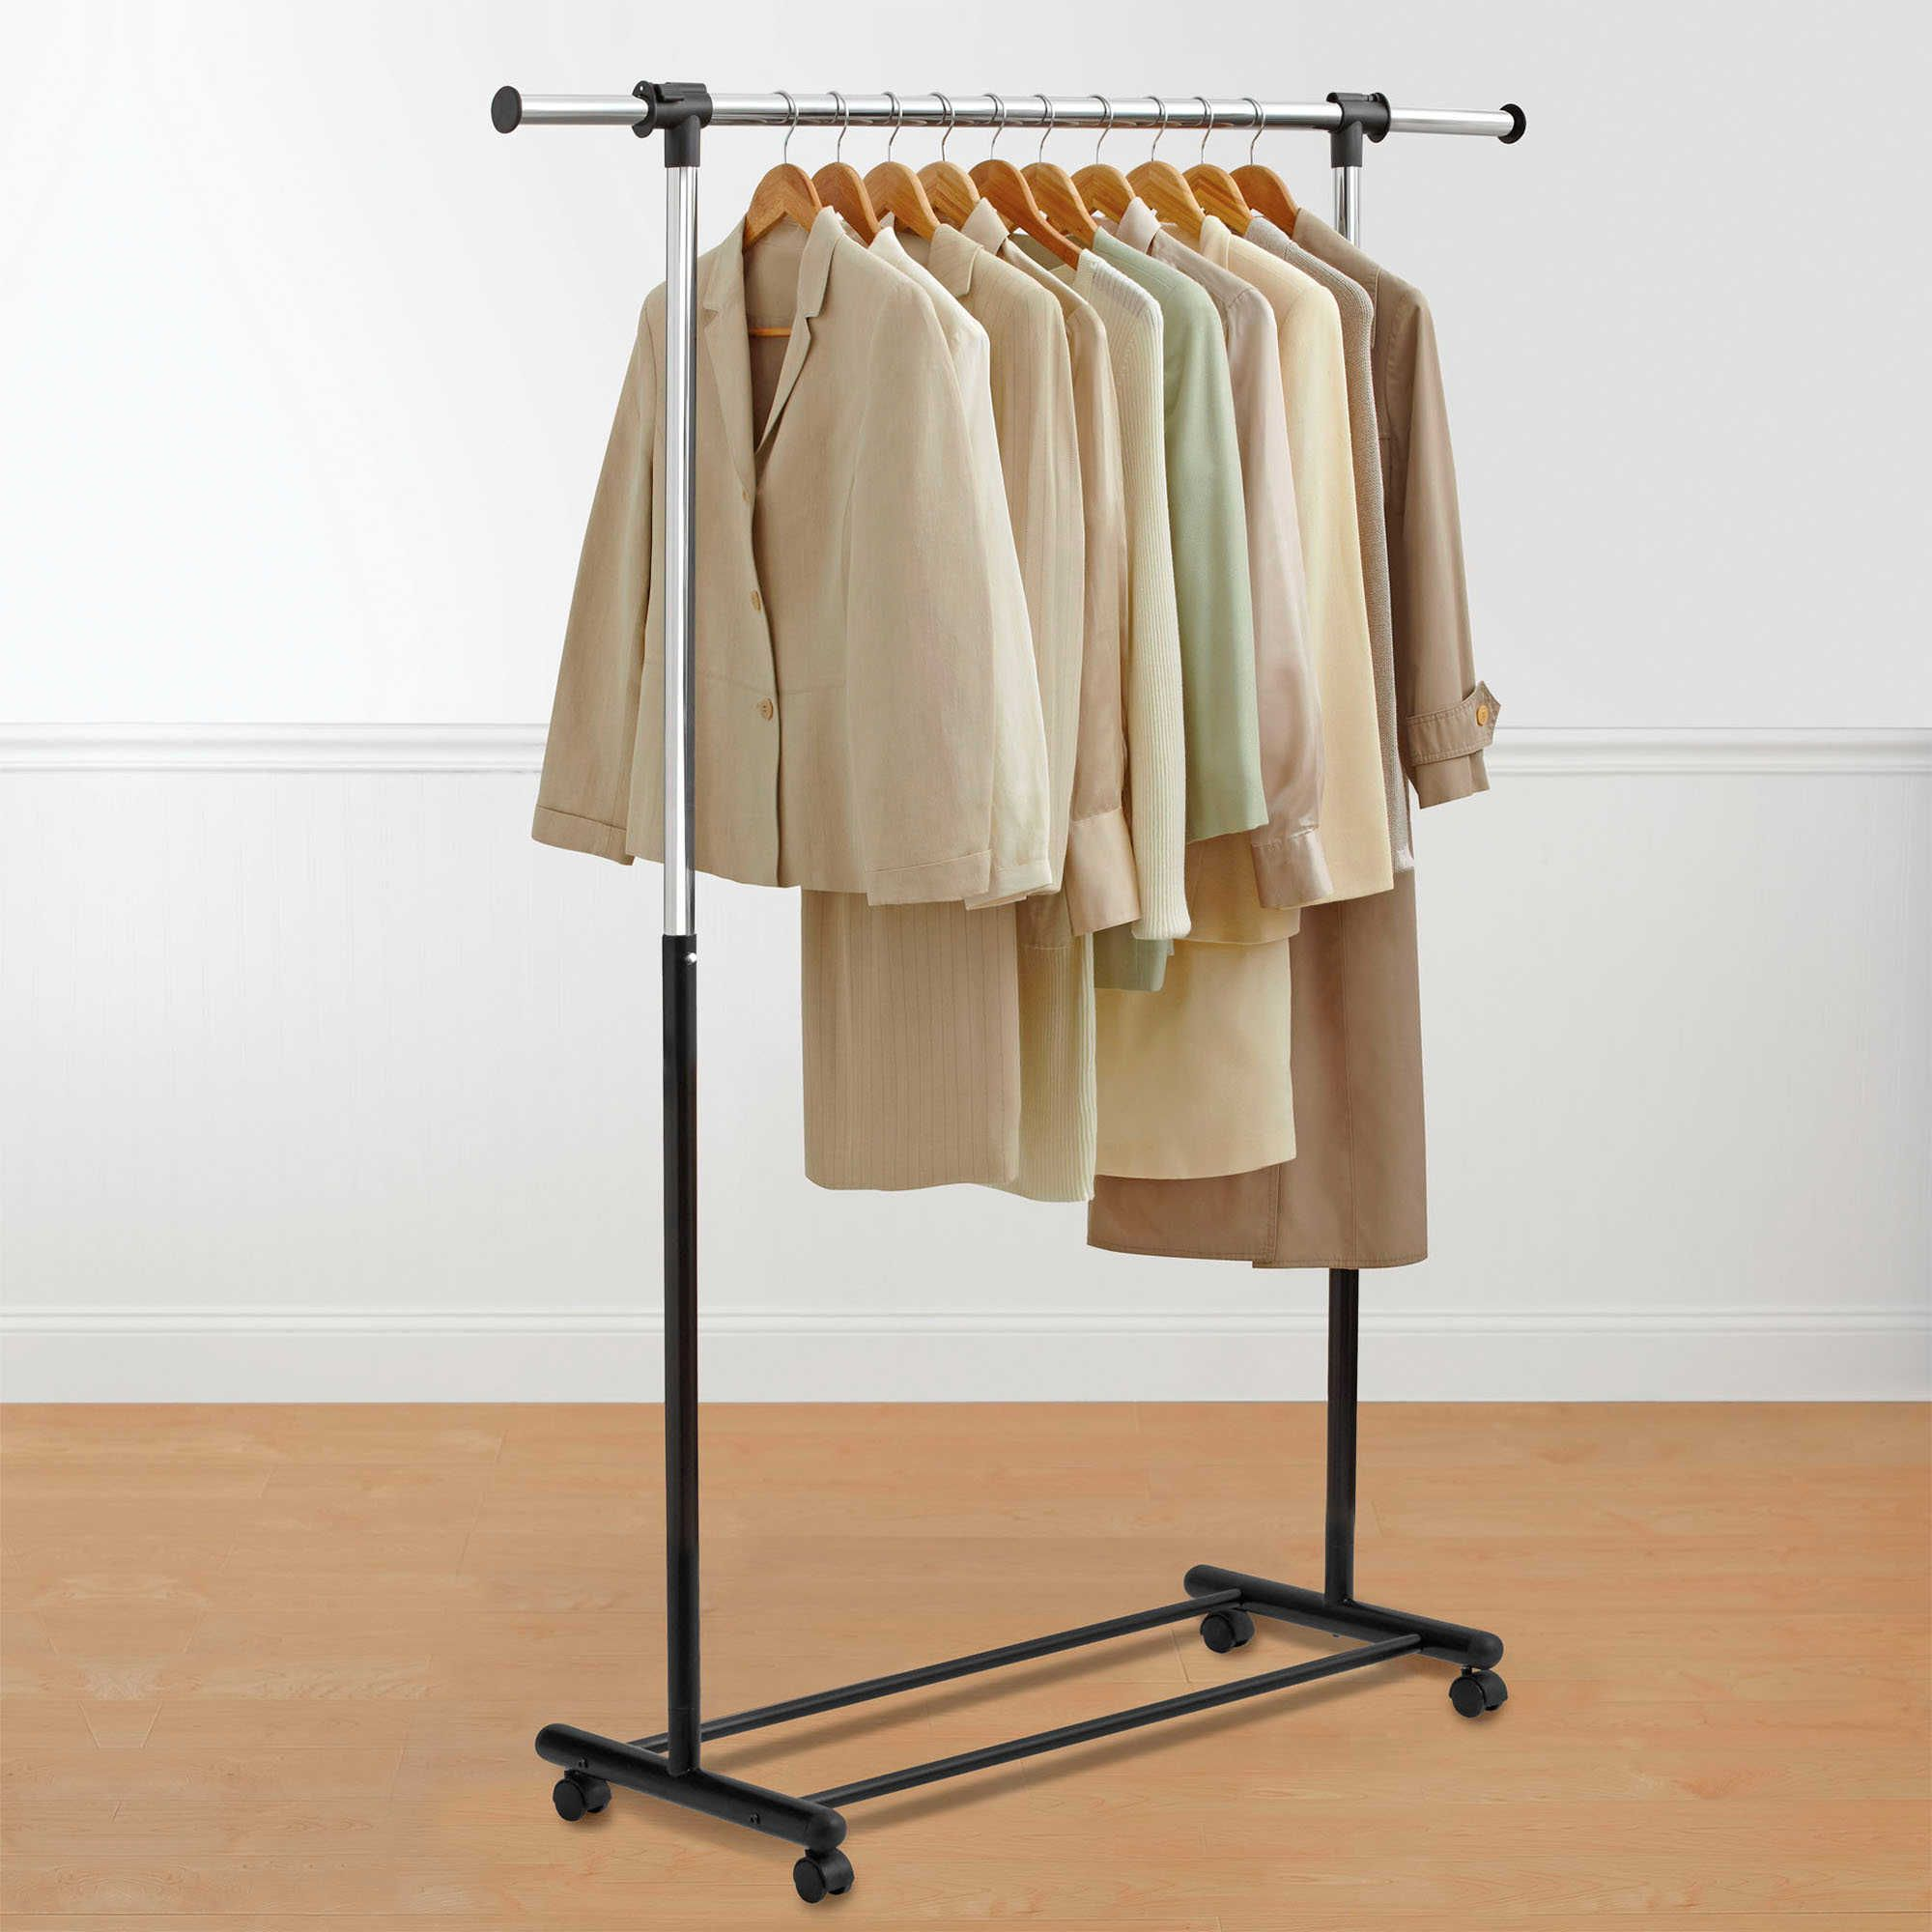 Bed Bath And Beyond Garment Rack Prepossessing Portable And Expandable Garment Rack In Blackchrome  Garment Racks 2018